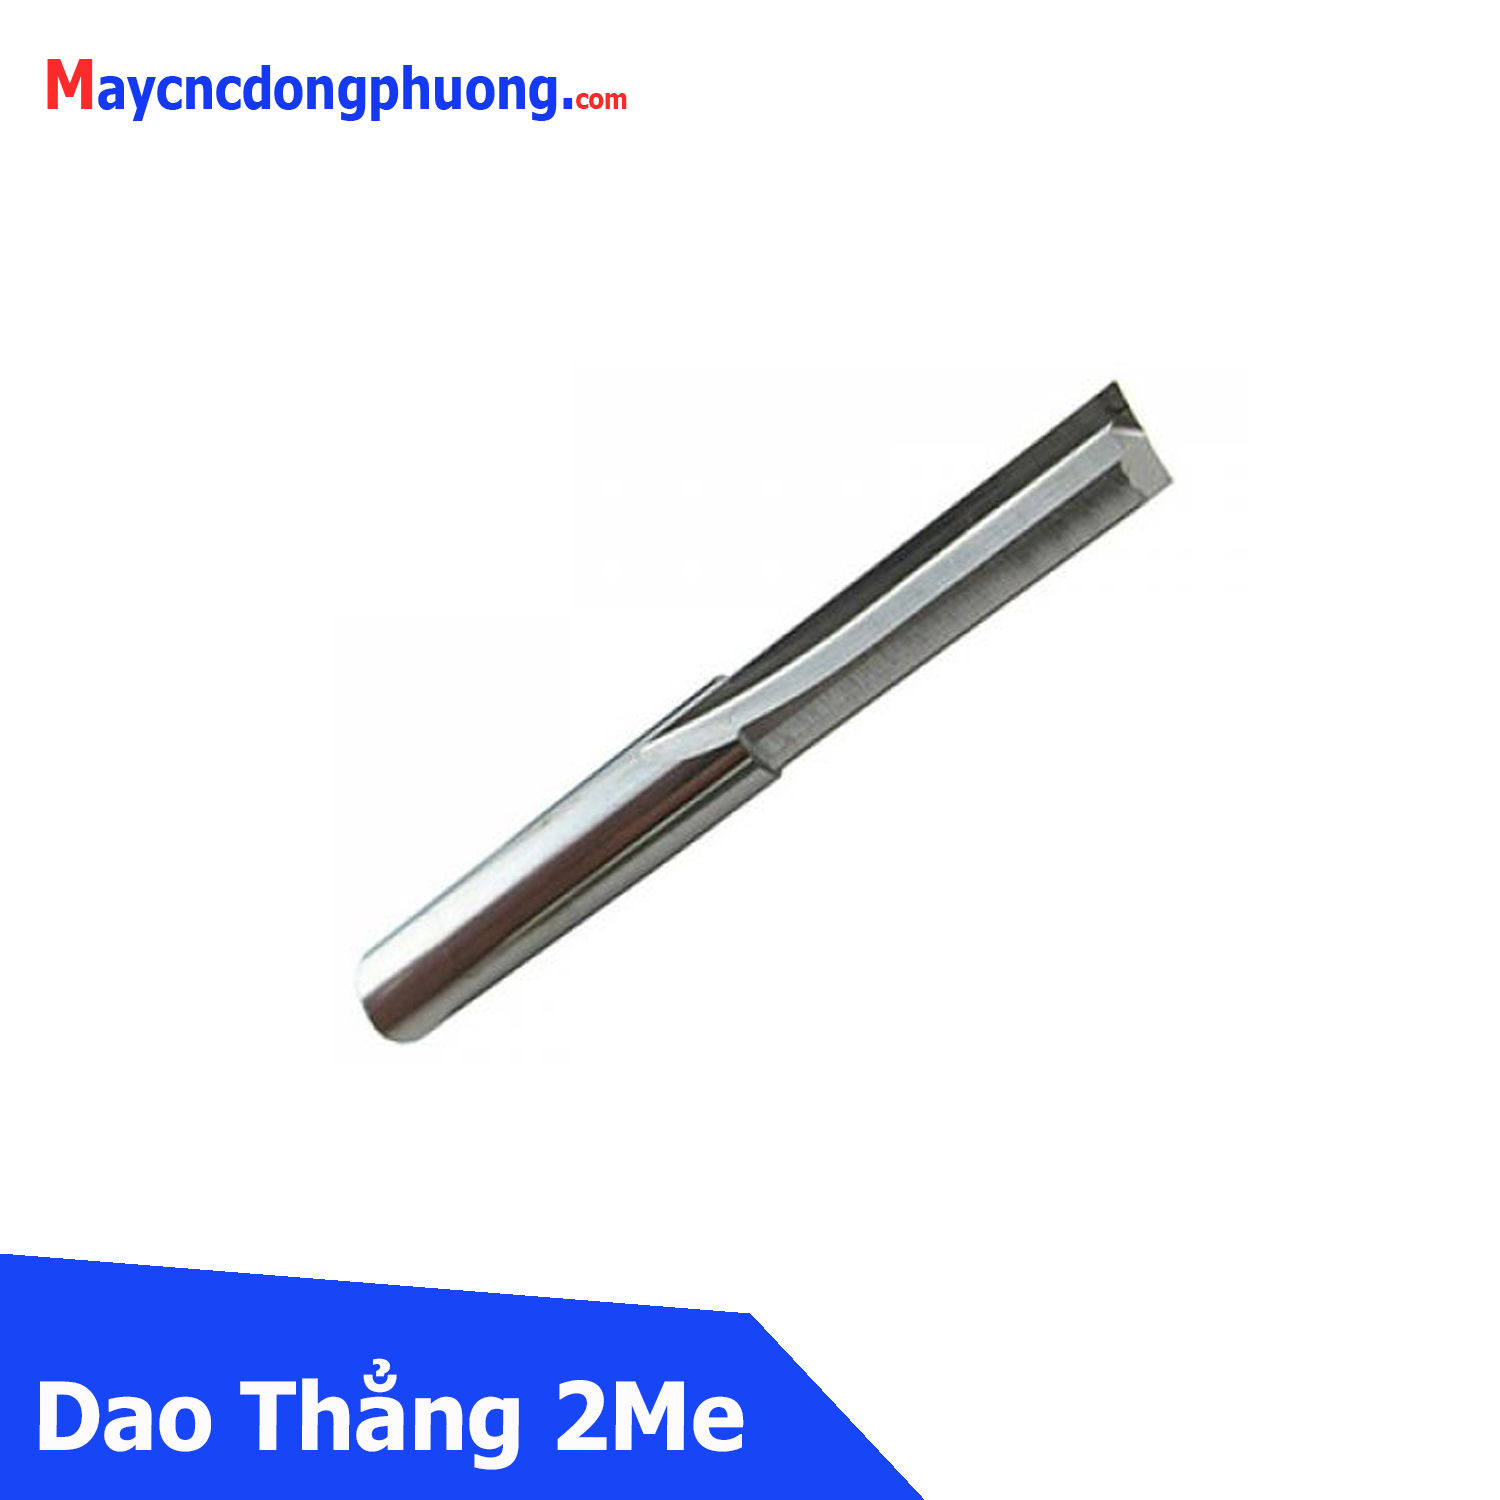 Dao Thẳng 2me